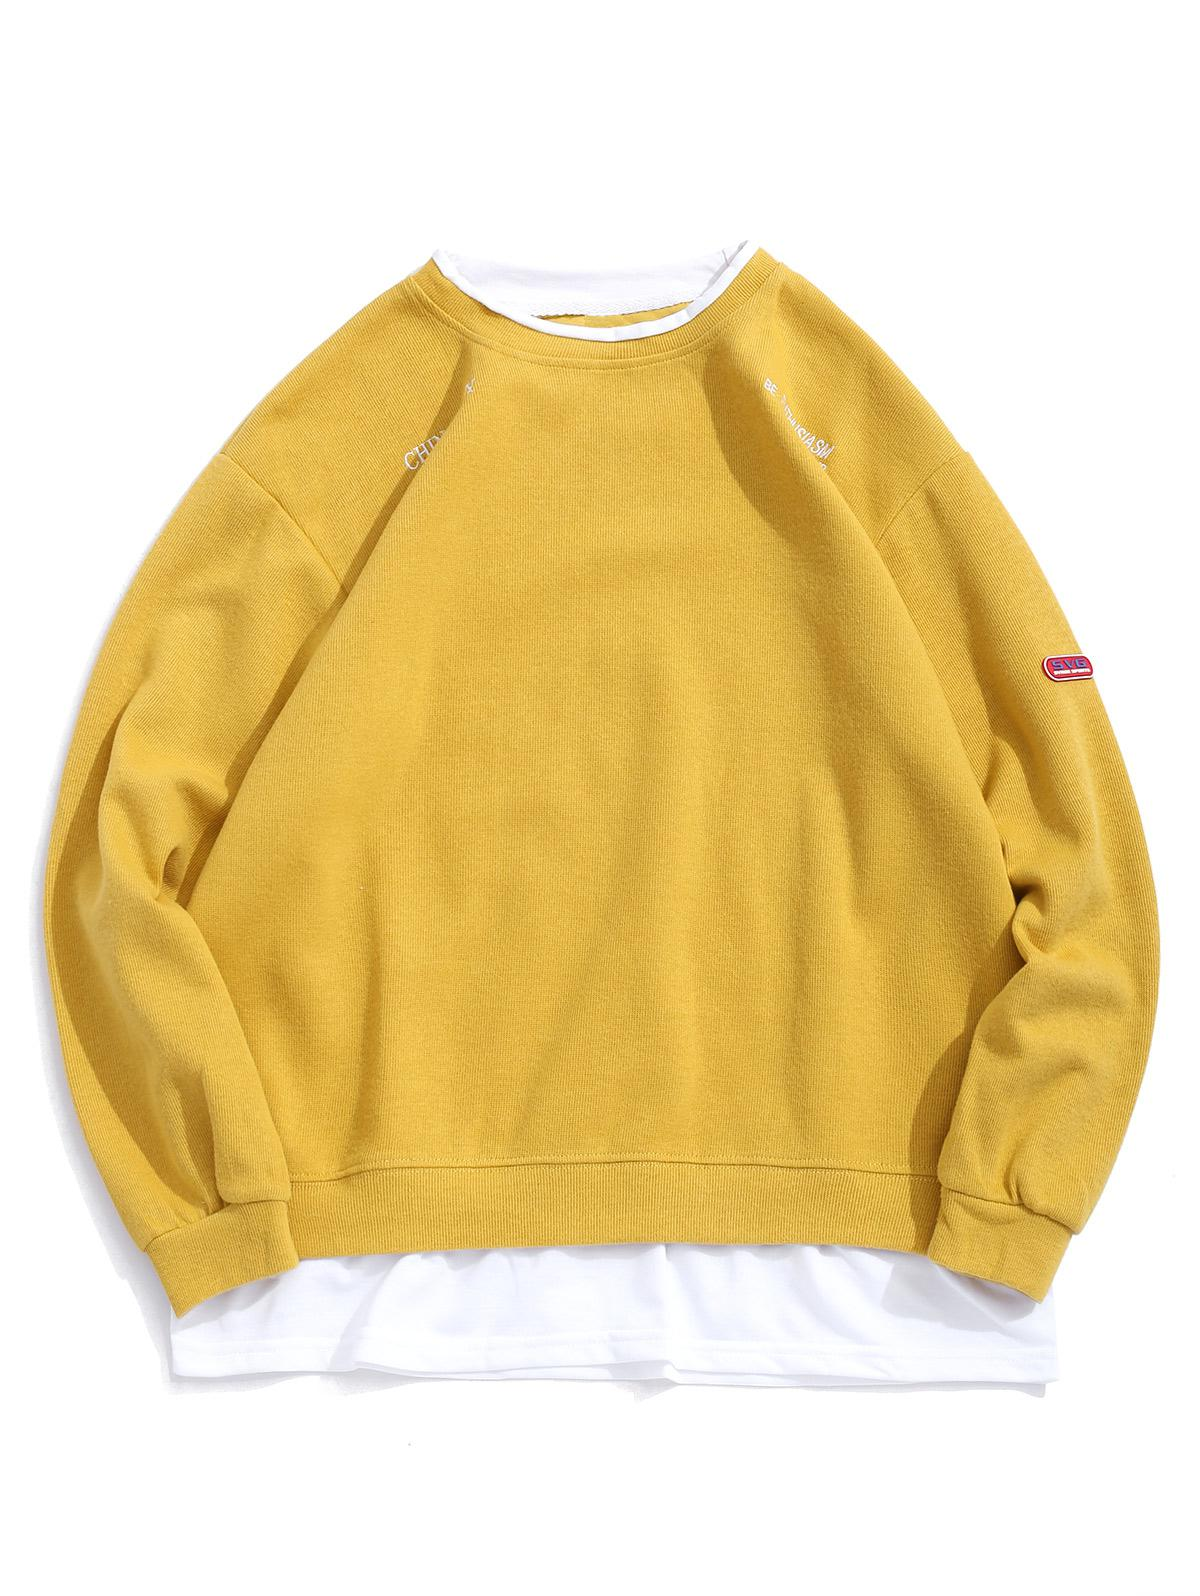 Letter Embroidery Graphic Colorblock Faux Twinset Sweatshirt фото